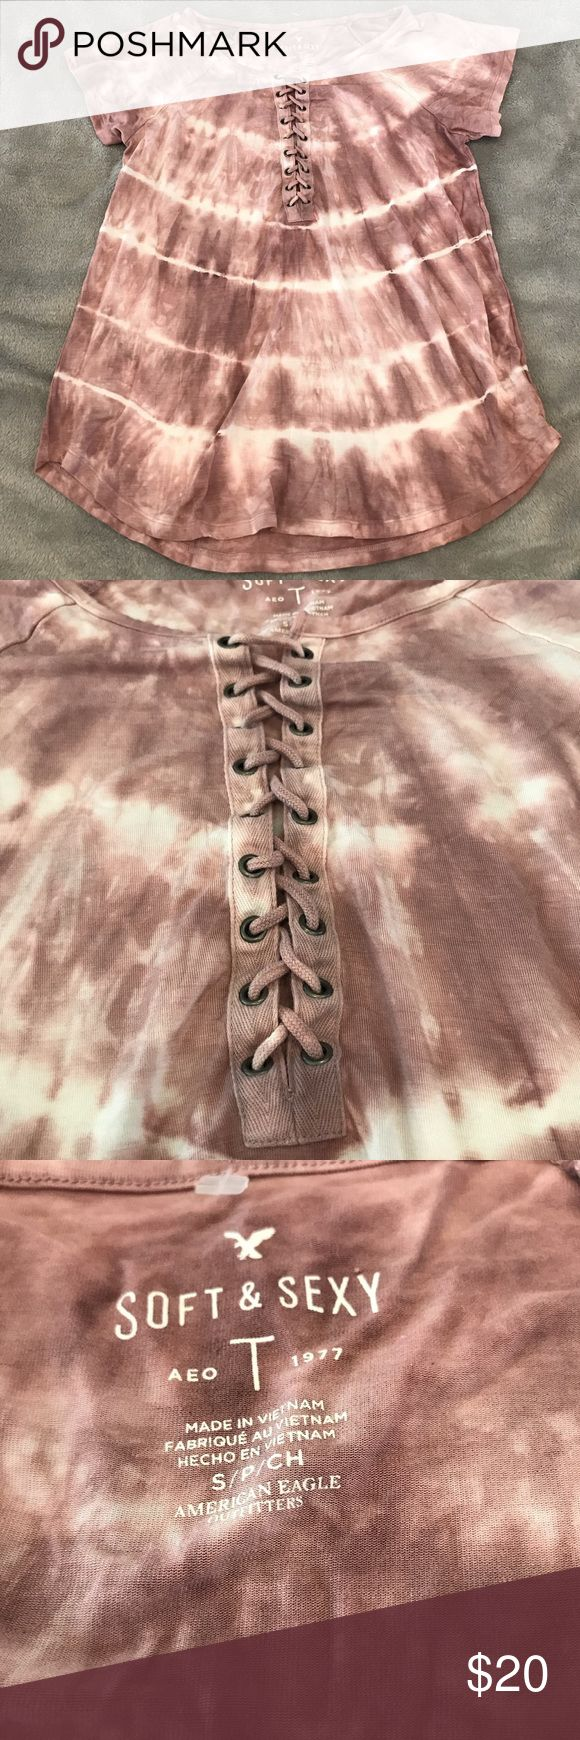 American eagle shirt The dye, blush pink! Super cute string neck. Brand new without tags! ❤️ please see pictures with materials list 💜 American Eagle Outfitters Tops